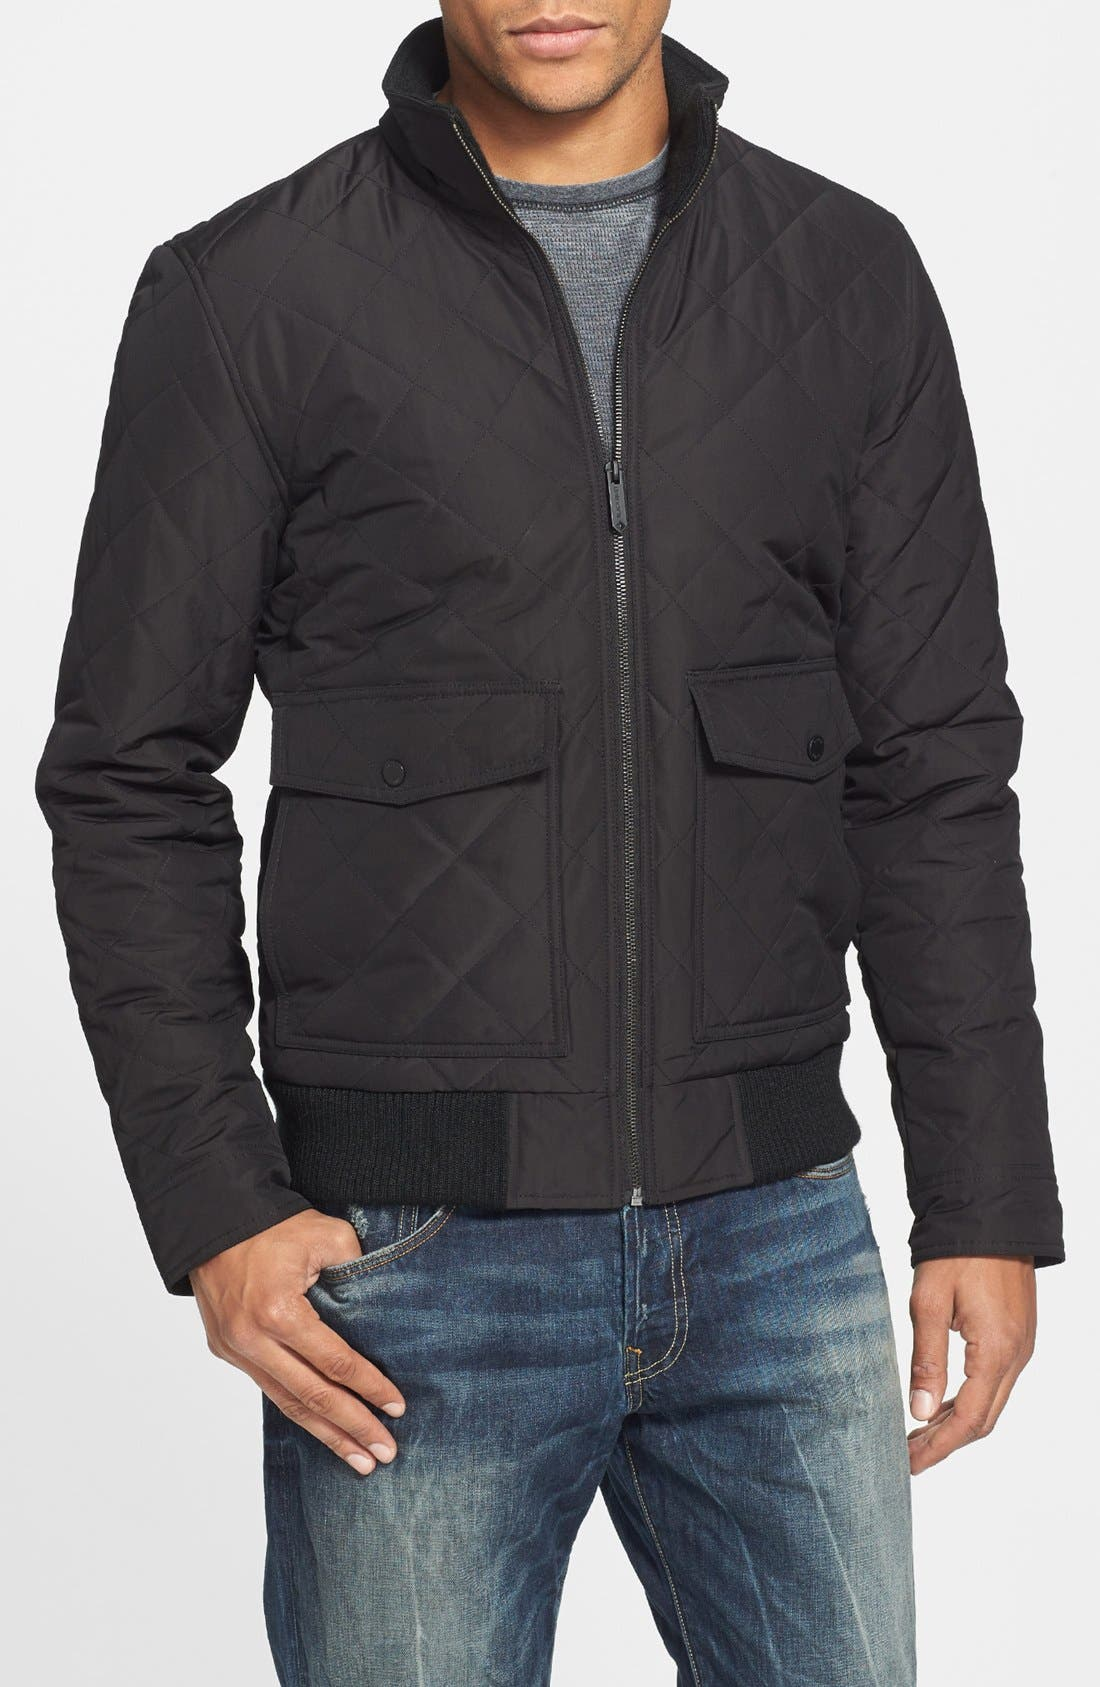 Main Image - Black Rivet Diamond Quilted Bomber Jacket